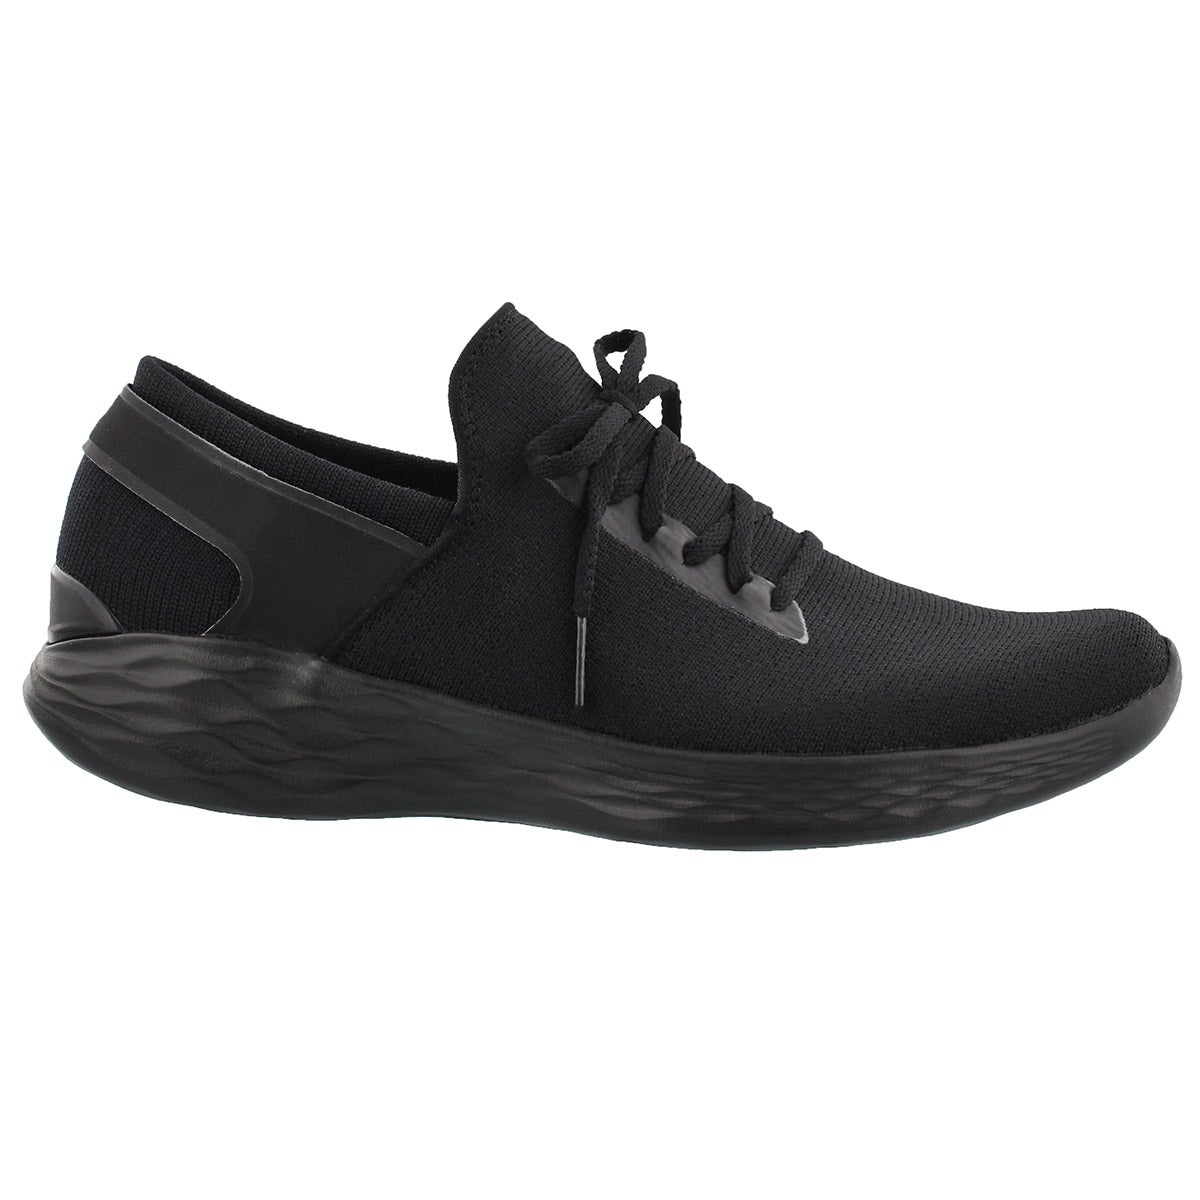 Lds You Inspire black slip on sneaker